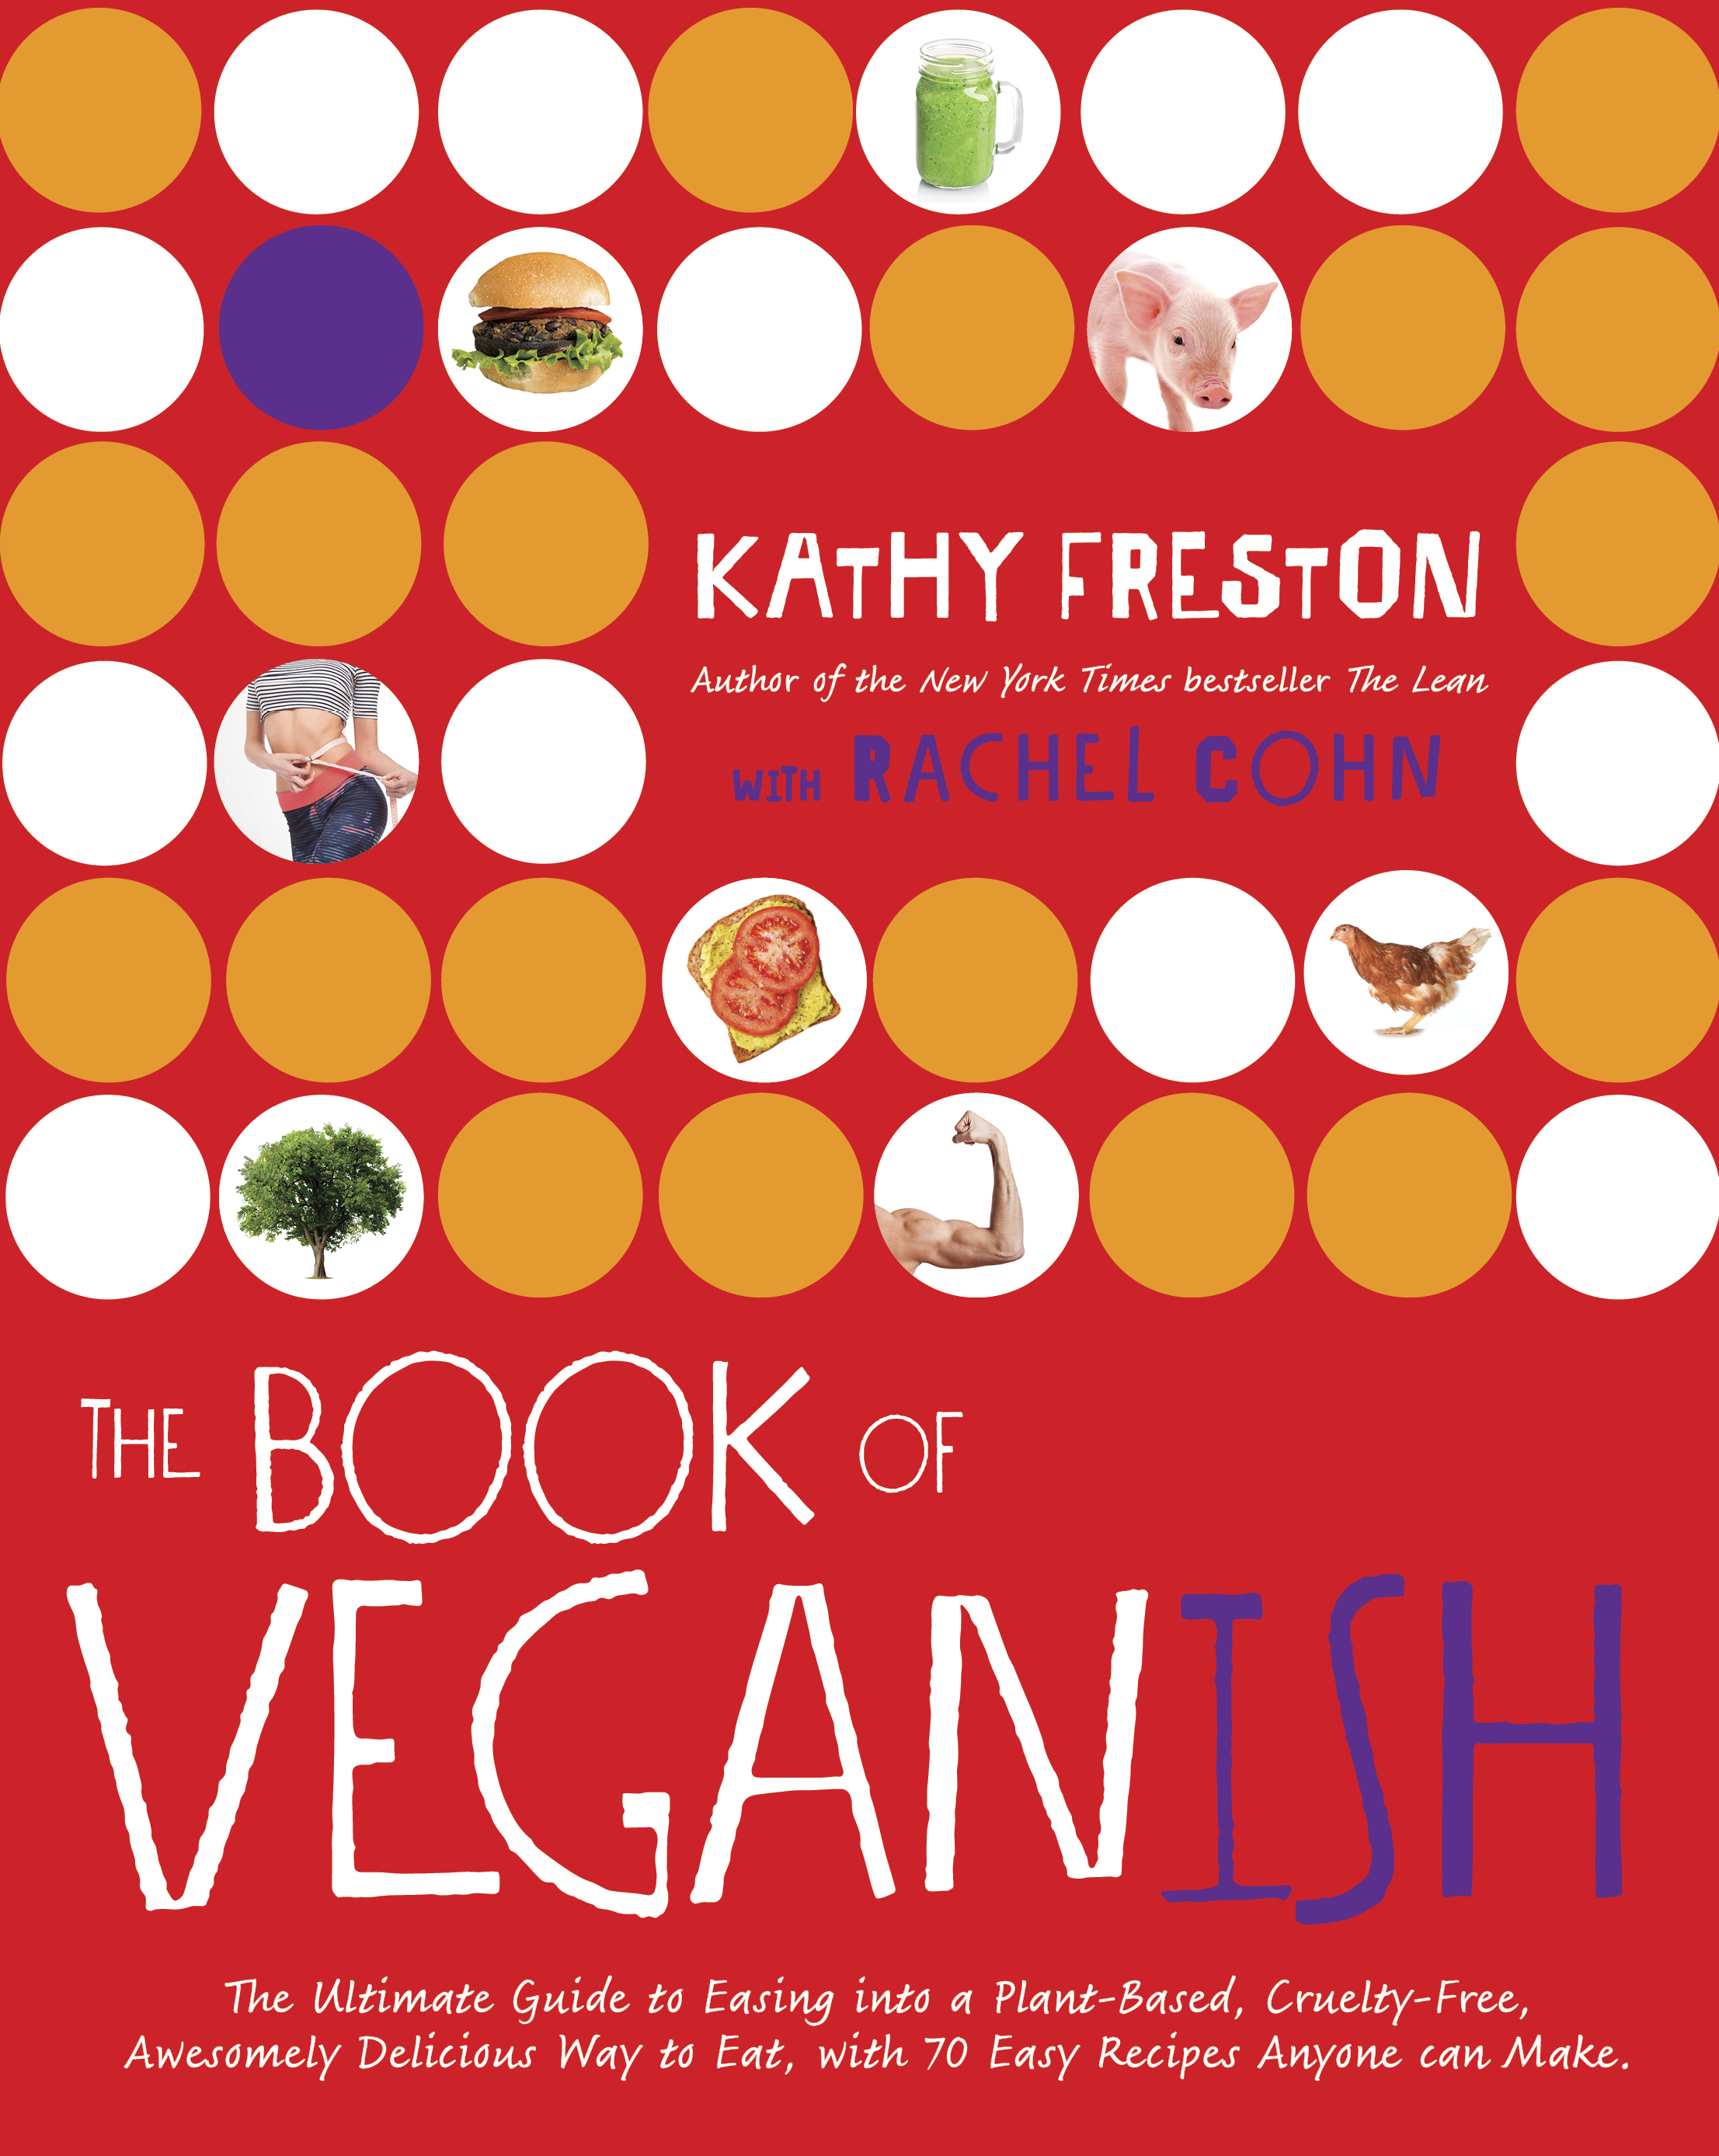 bookofveganishcover